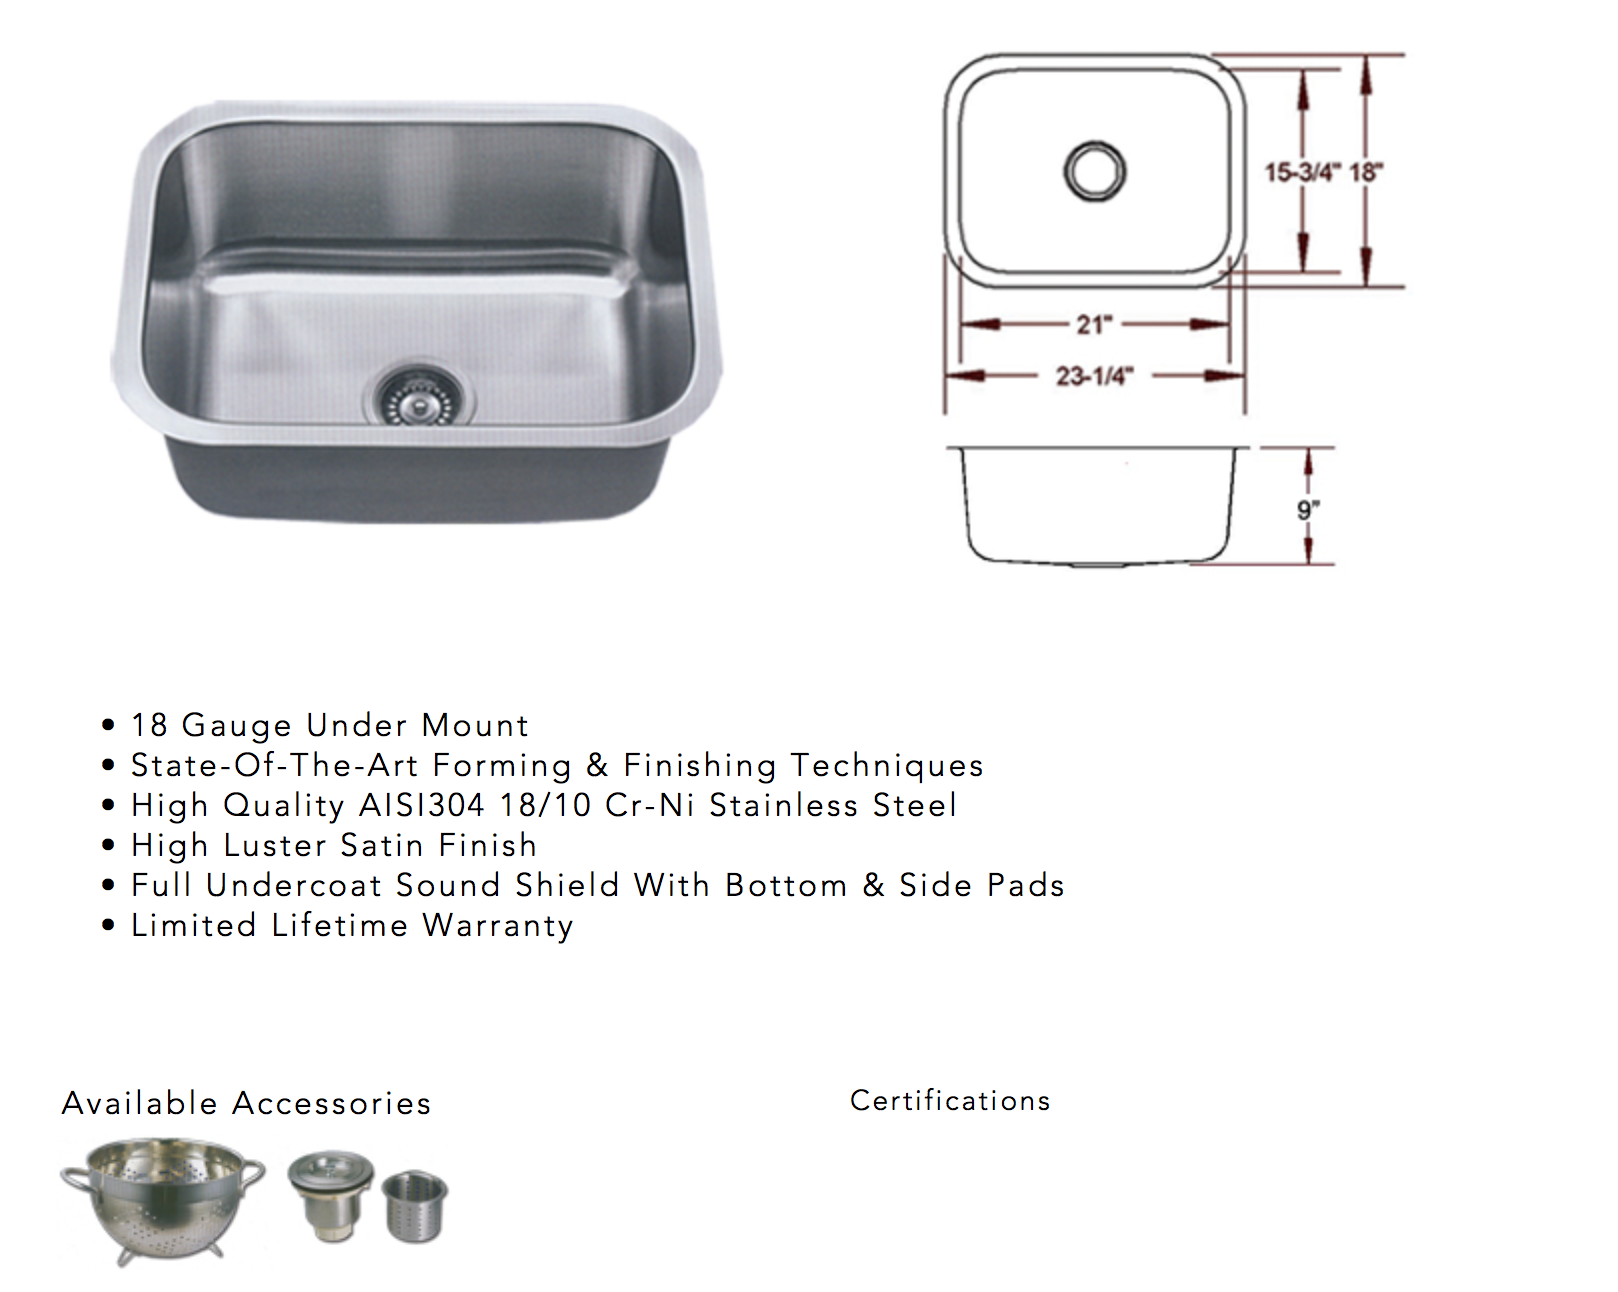 image containing specifications for undermount sink for quartz or granite countertops installed by new leaf cabinets & counters in Tacoma, WA